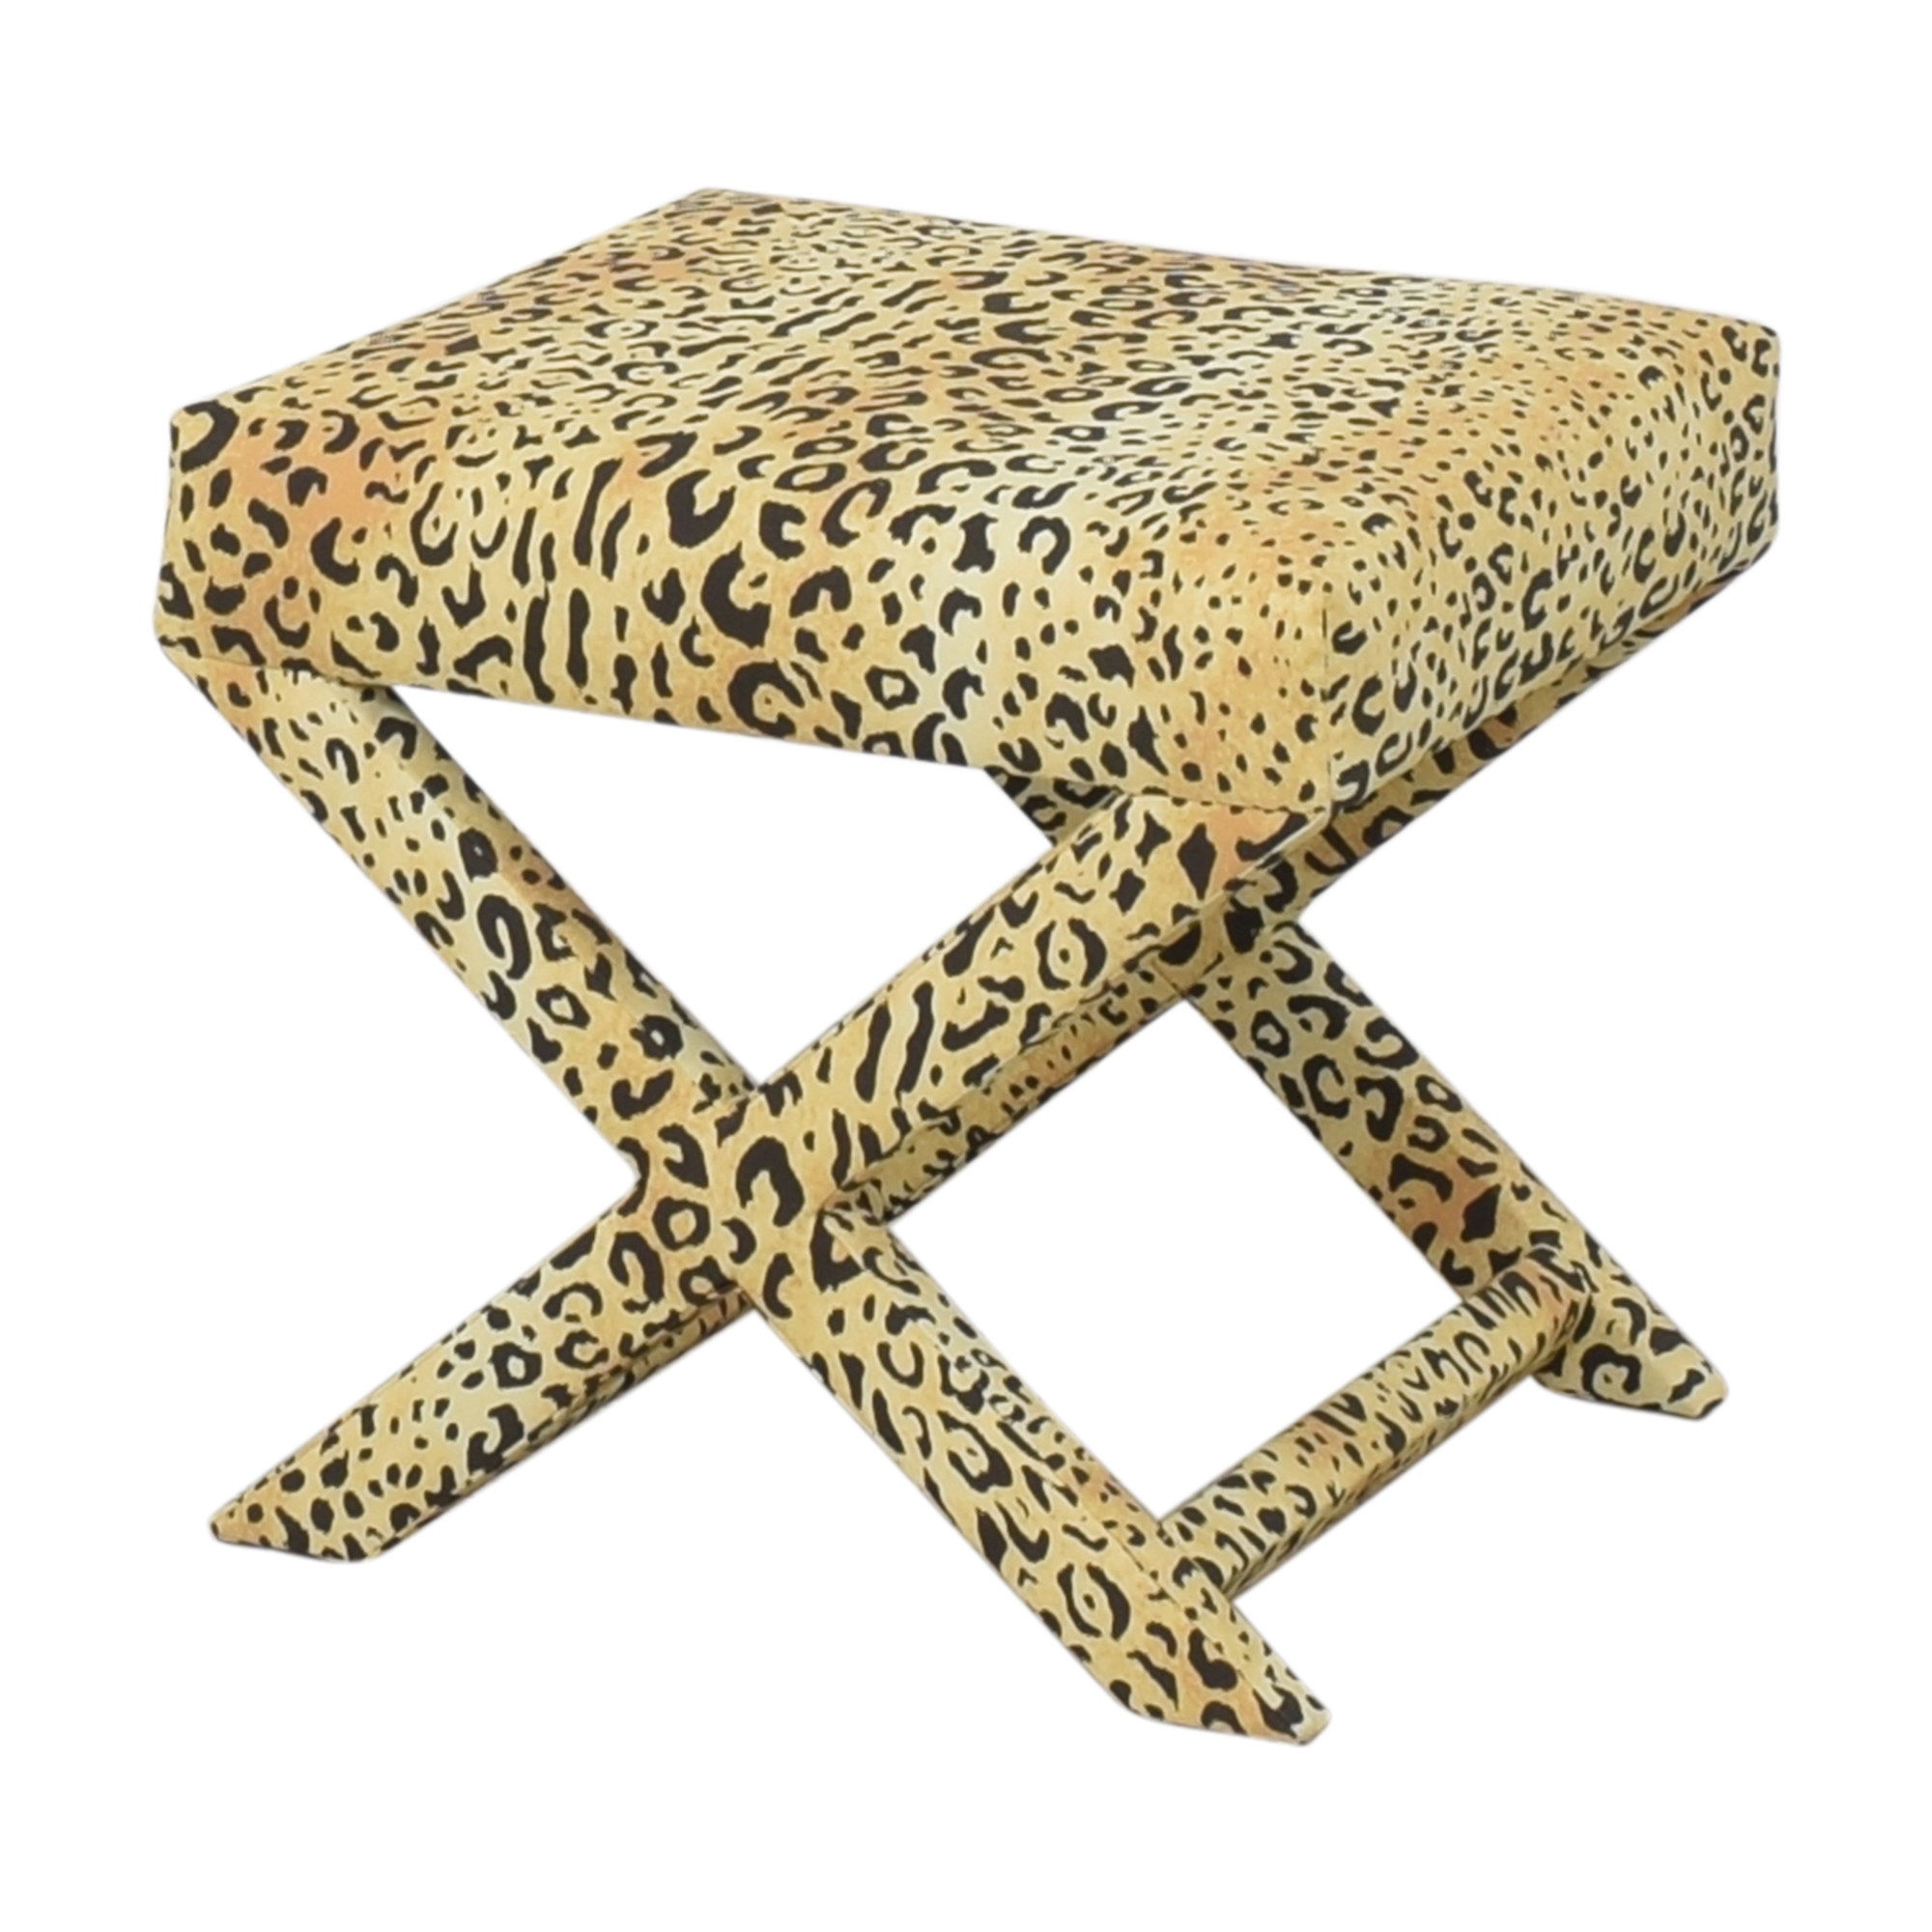 The Inside Leopard X Bench / Benches